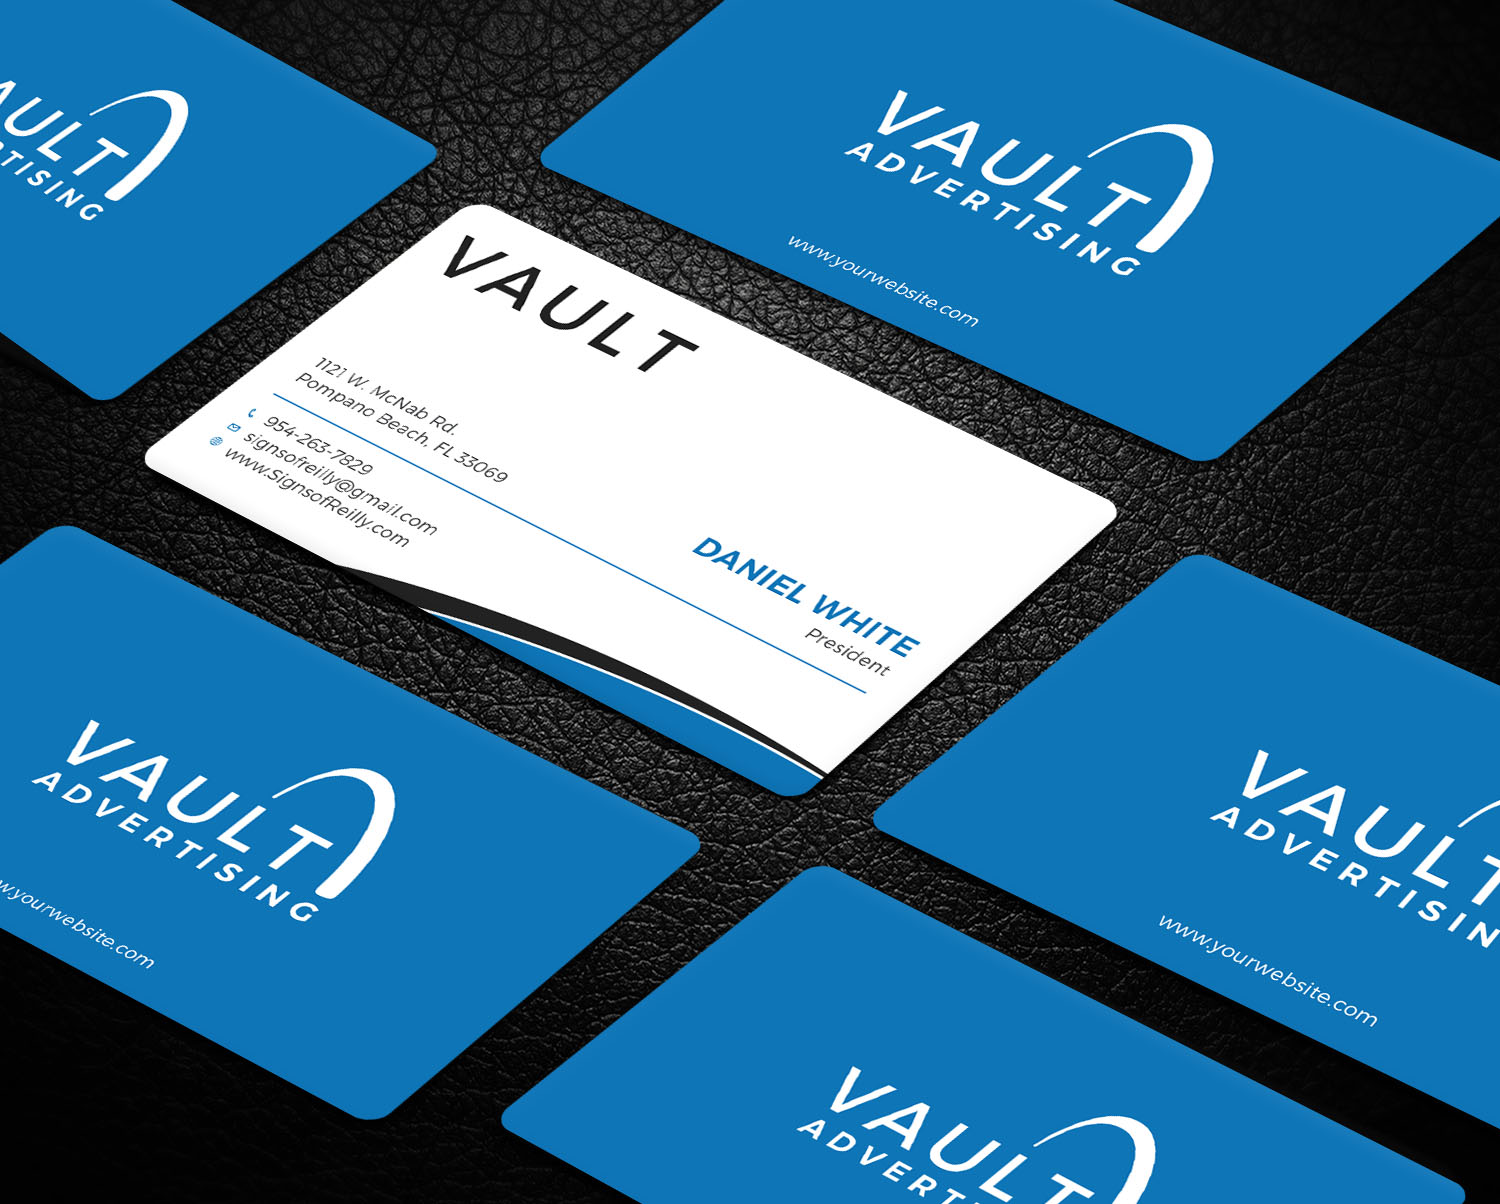 Elegant playful business business card design for a company by business card design by avanger000 for this project design 16907081 reheart Choice Image